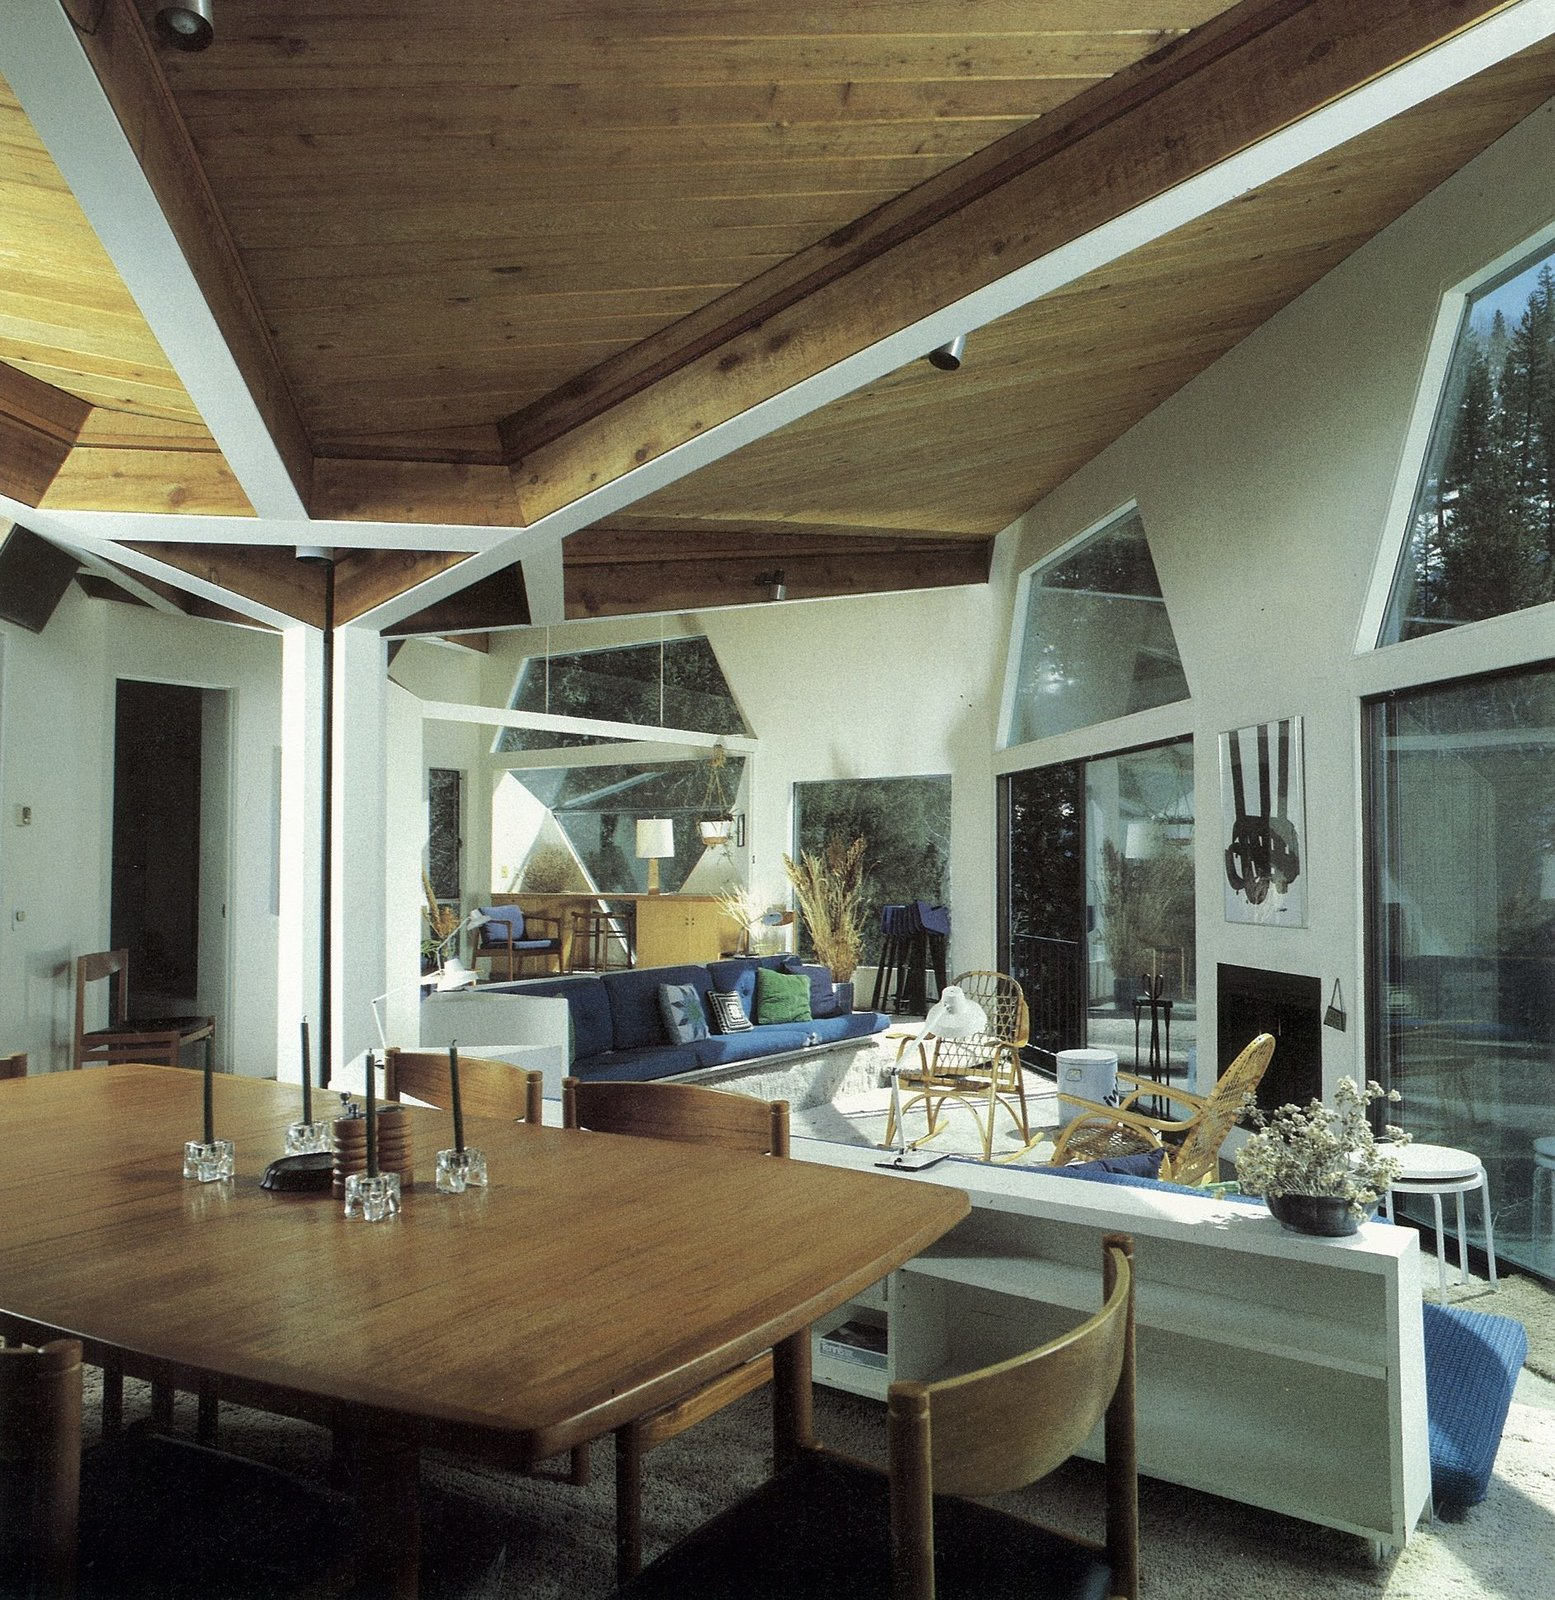 Harry Weese's Baird House, Aspen, Colorado — interior  Photo 21 of 21 in How American Modernism Came to the Mountains